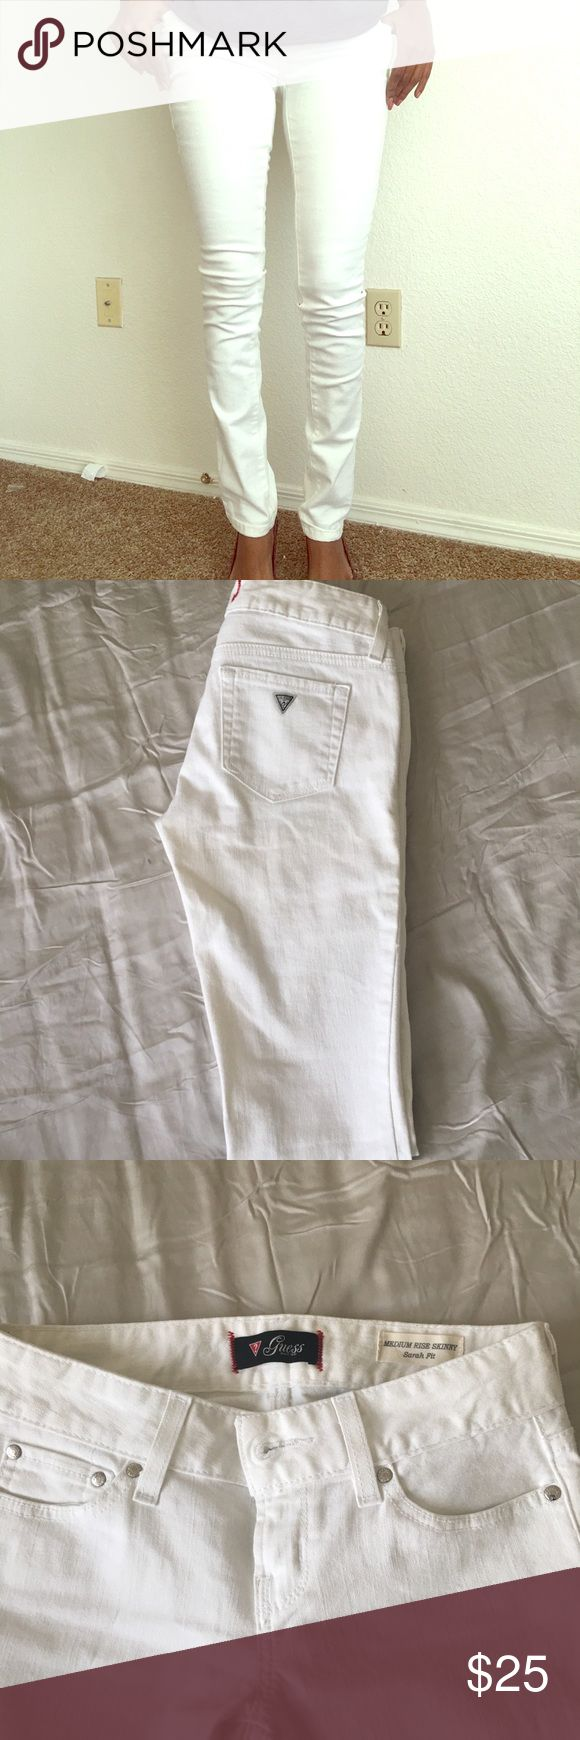 Guess white jeans/denim medium rise skinny fit Guess white jeans/denim medium rise skinny fit - Sarah fit... worn a couple of times Guess Jeans Skinny